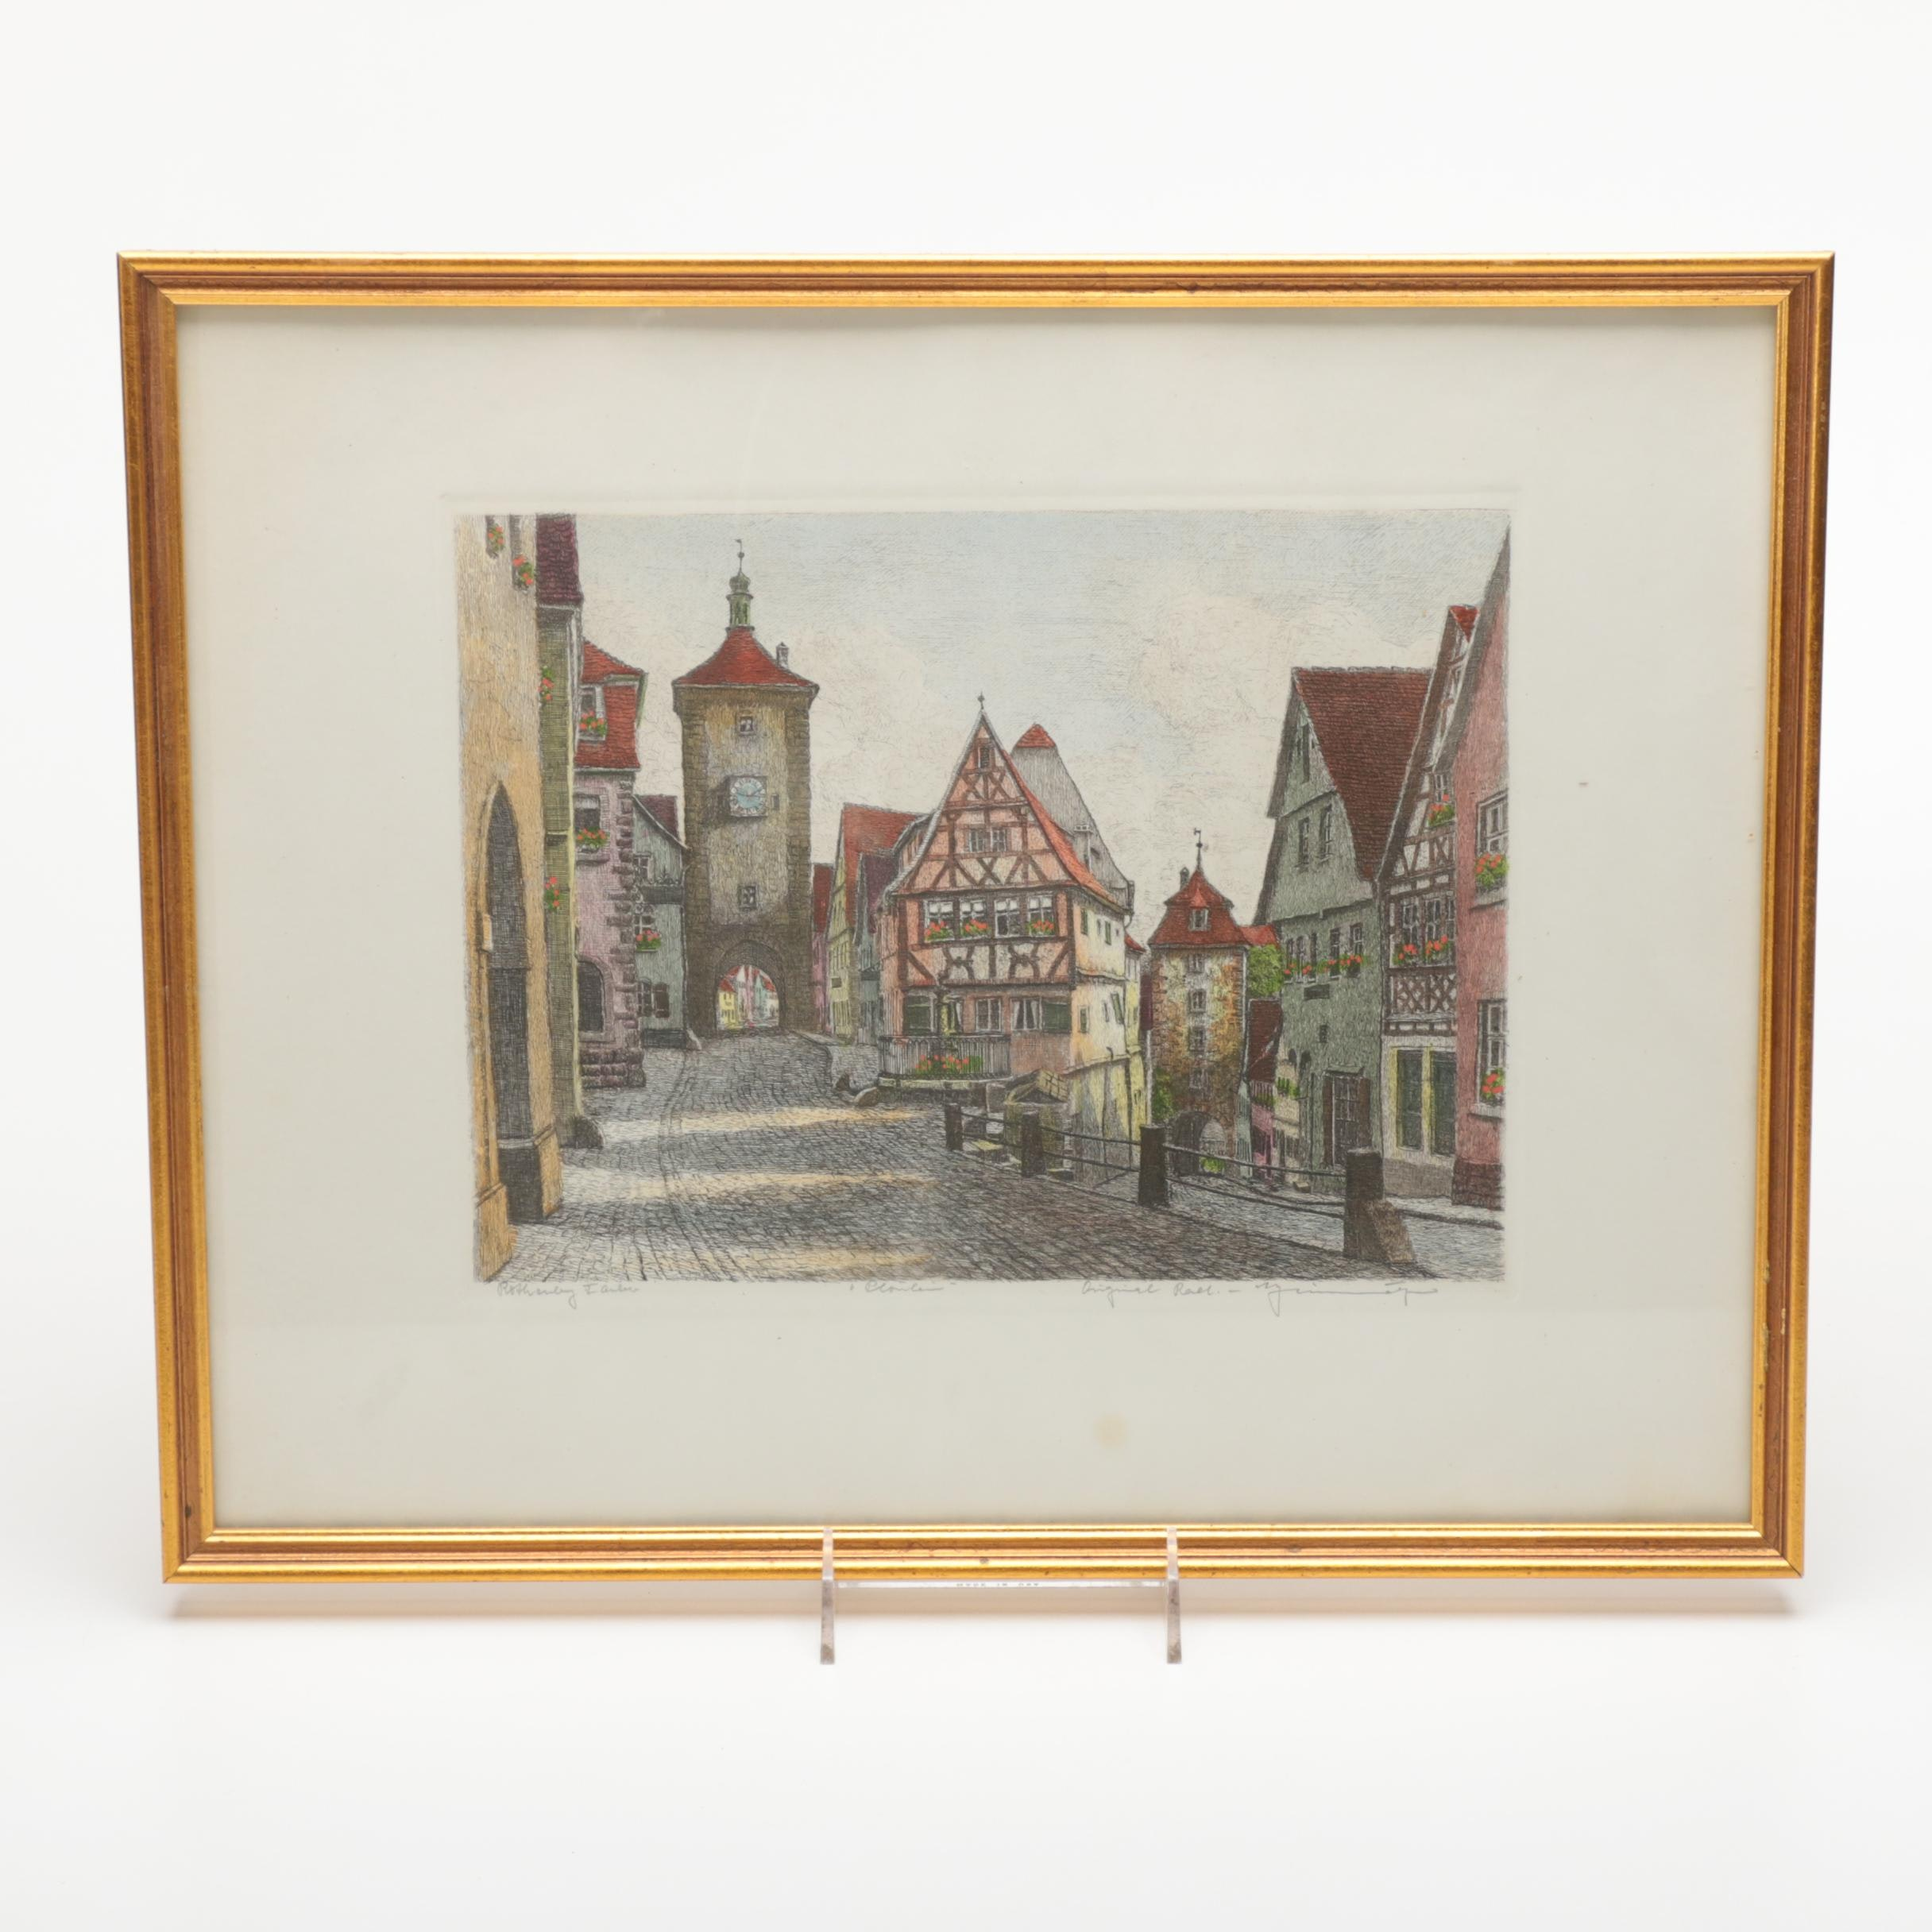 Limited Edition Hand Colored Etching of a Street in Rothenburg ob der Tauber